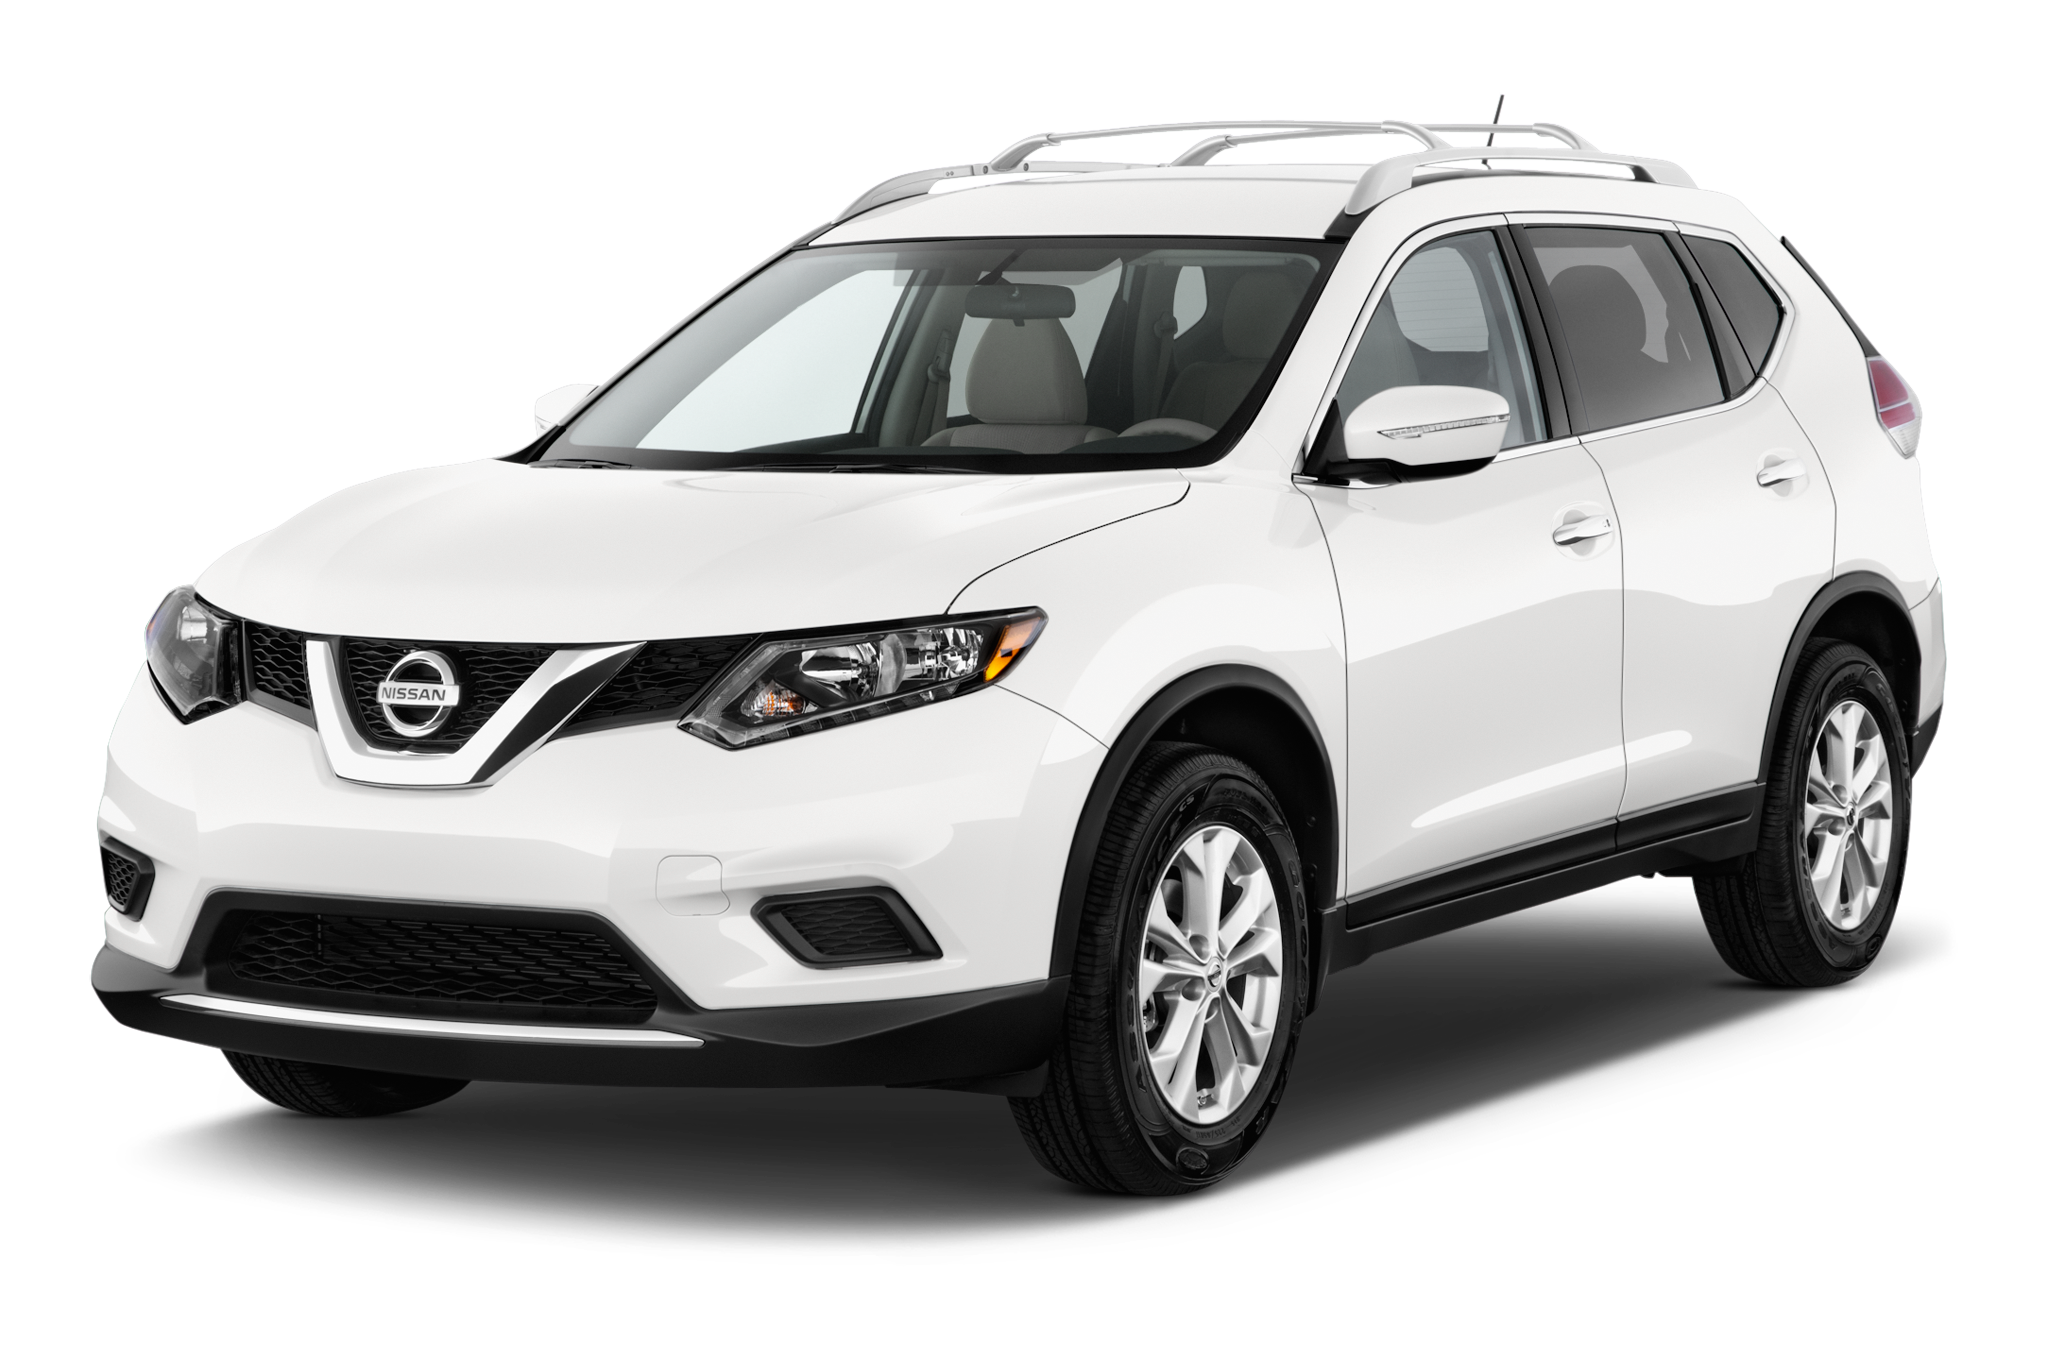 2016 nissan rogue specs and features msn autos. Black Bedroom Furniture Sets. Home Design Ideas